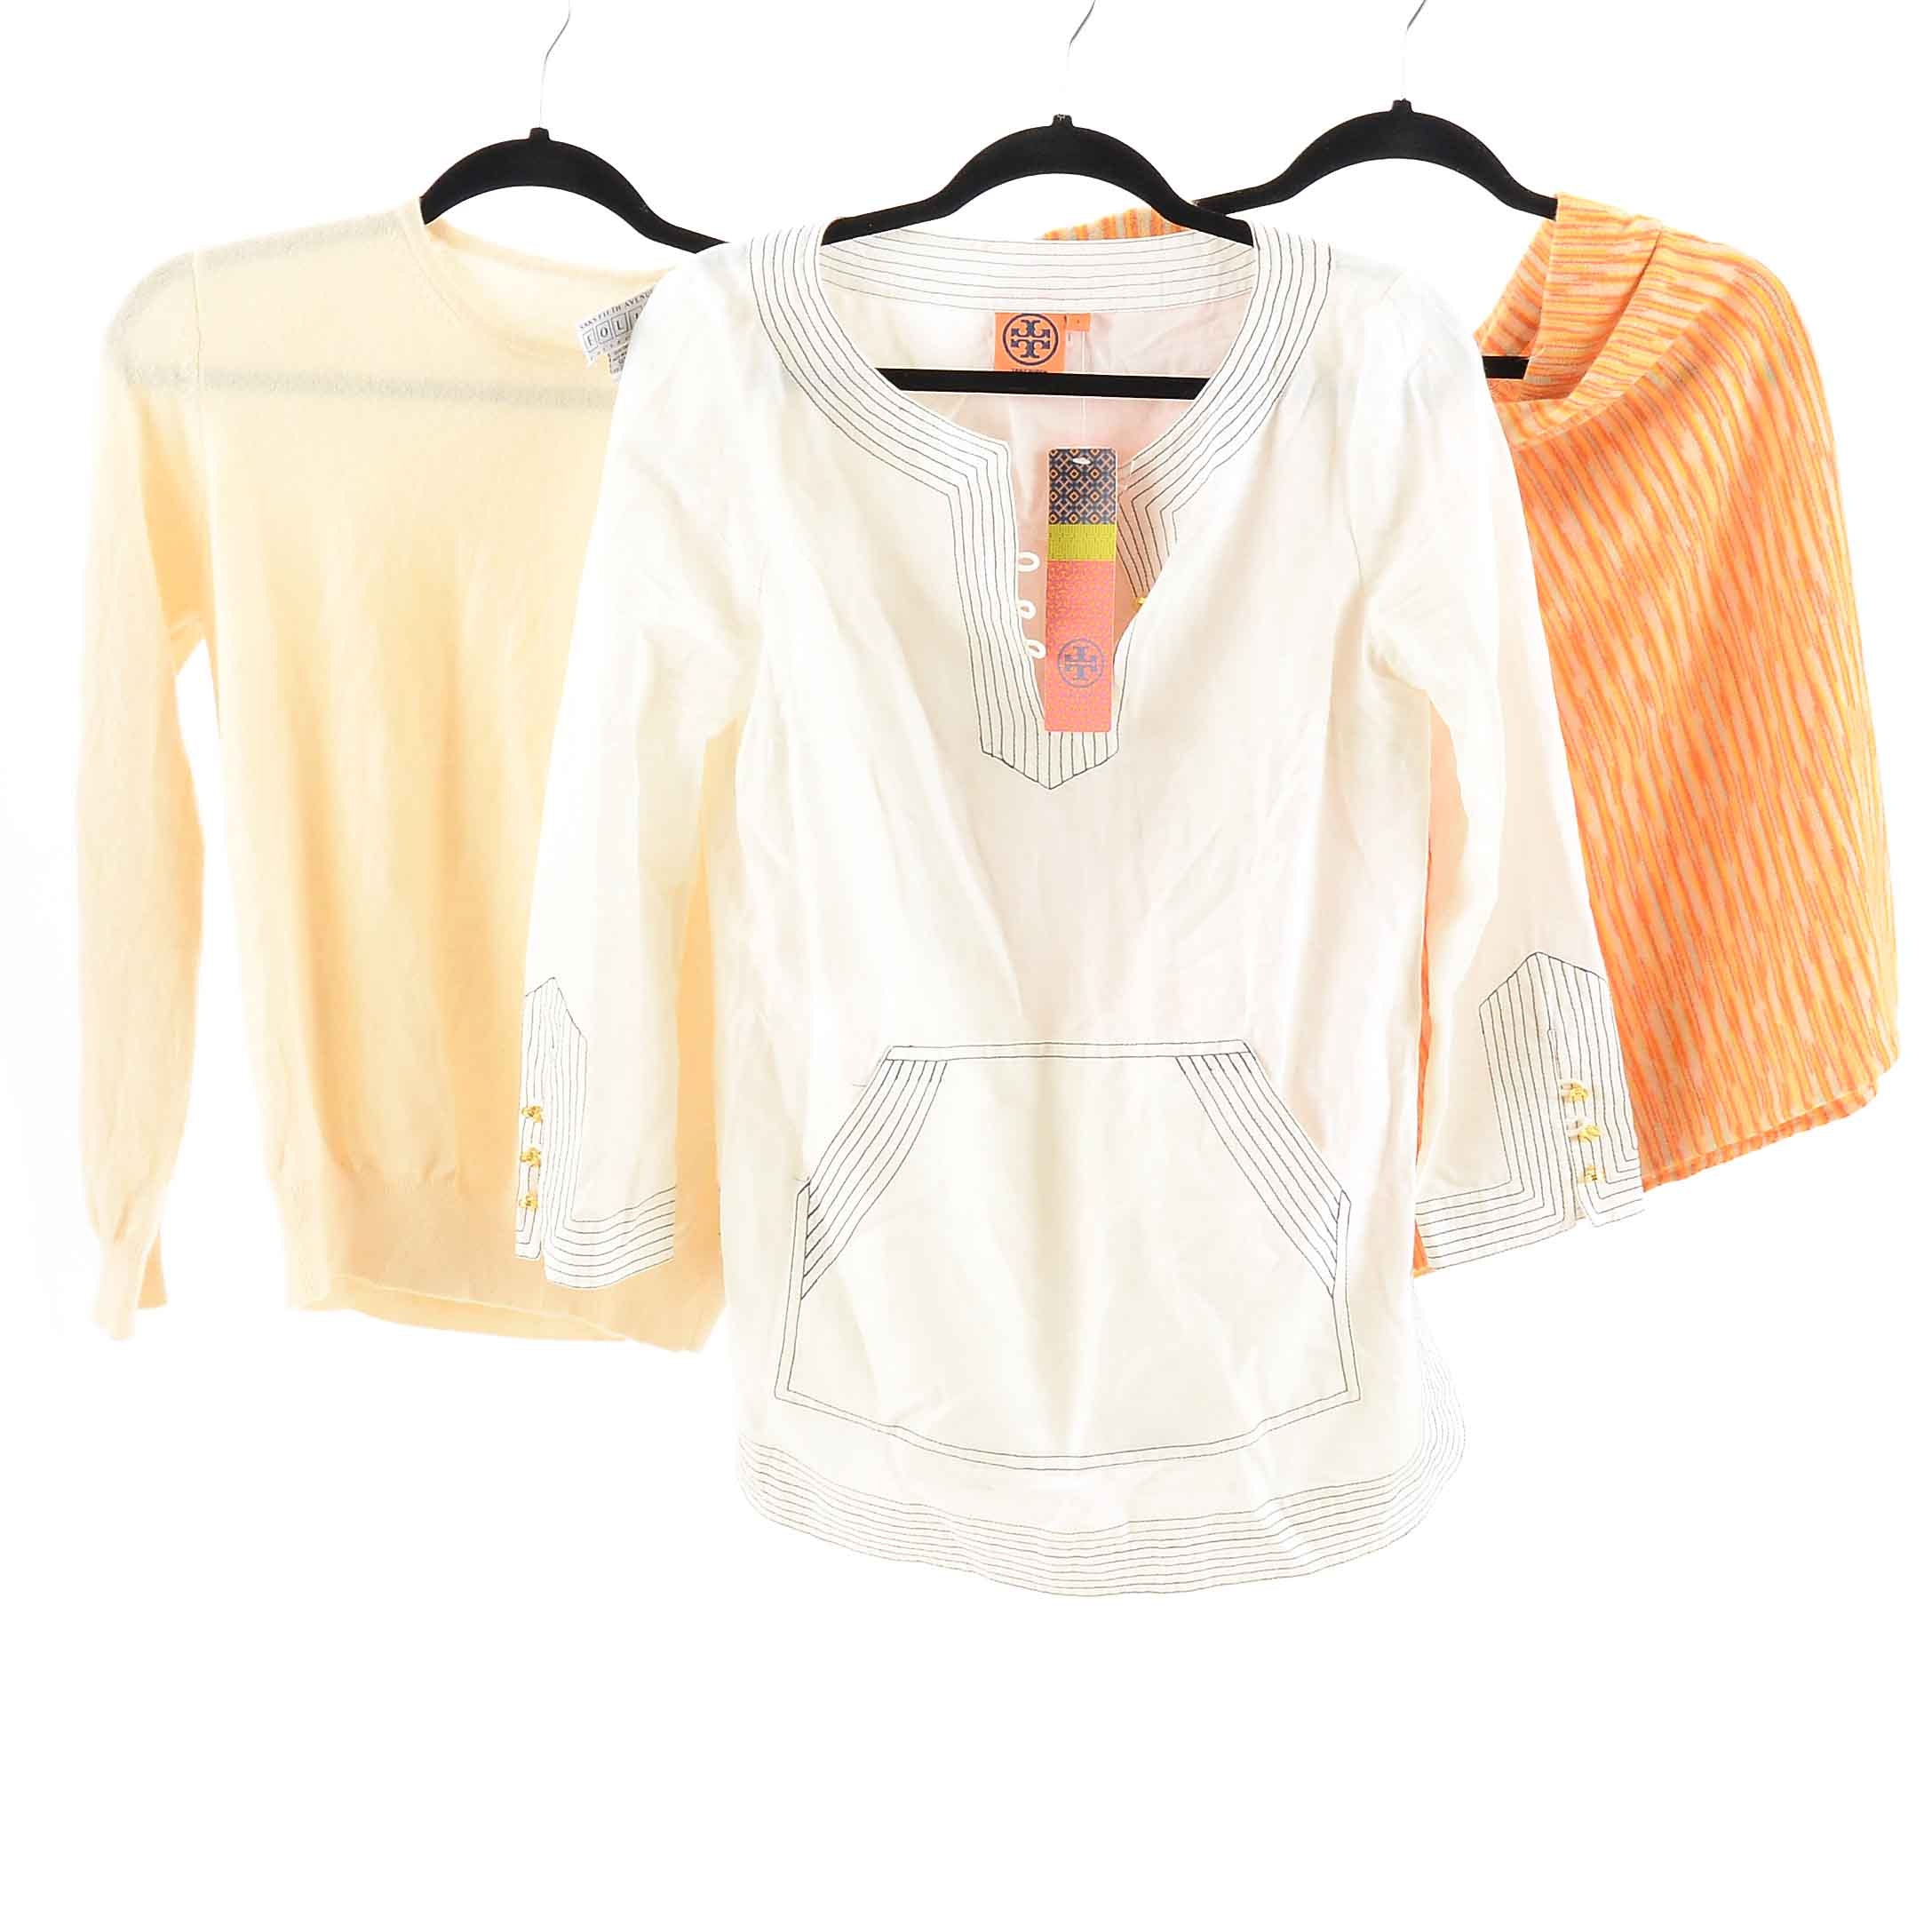 Collection of Sweaters and Blouses including Tory Burch